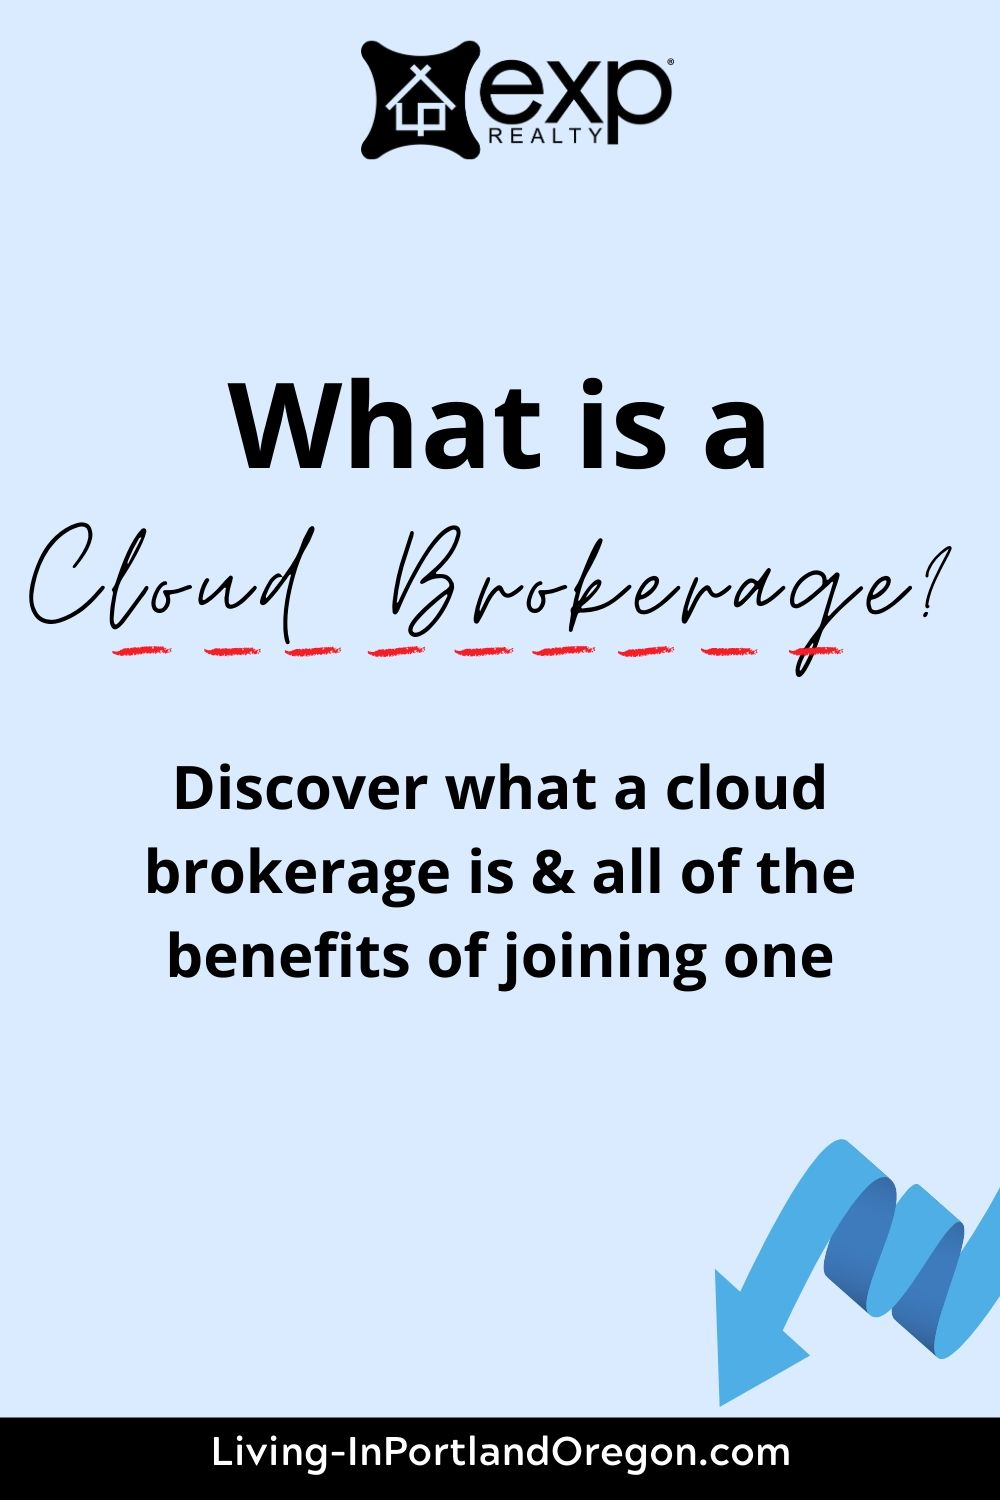 What is a cloud brokerage, eXp Realty